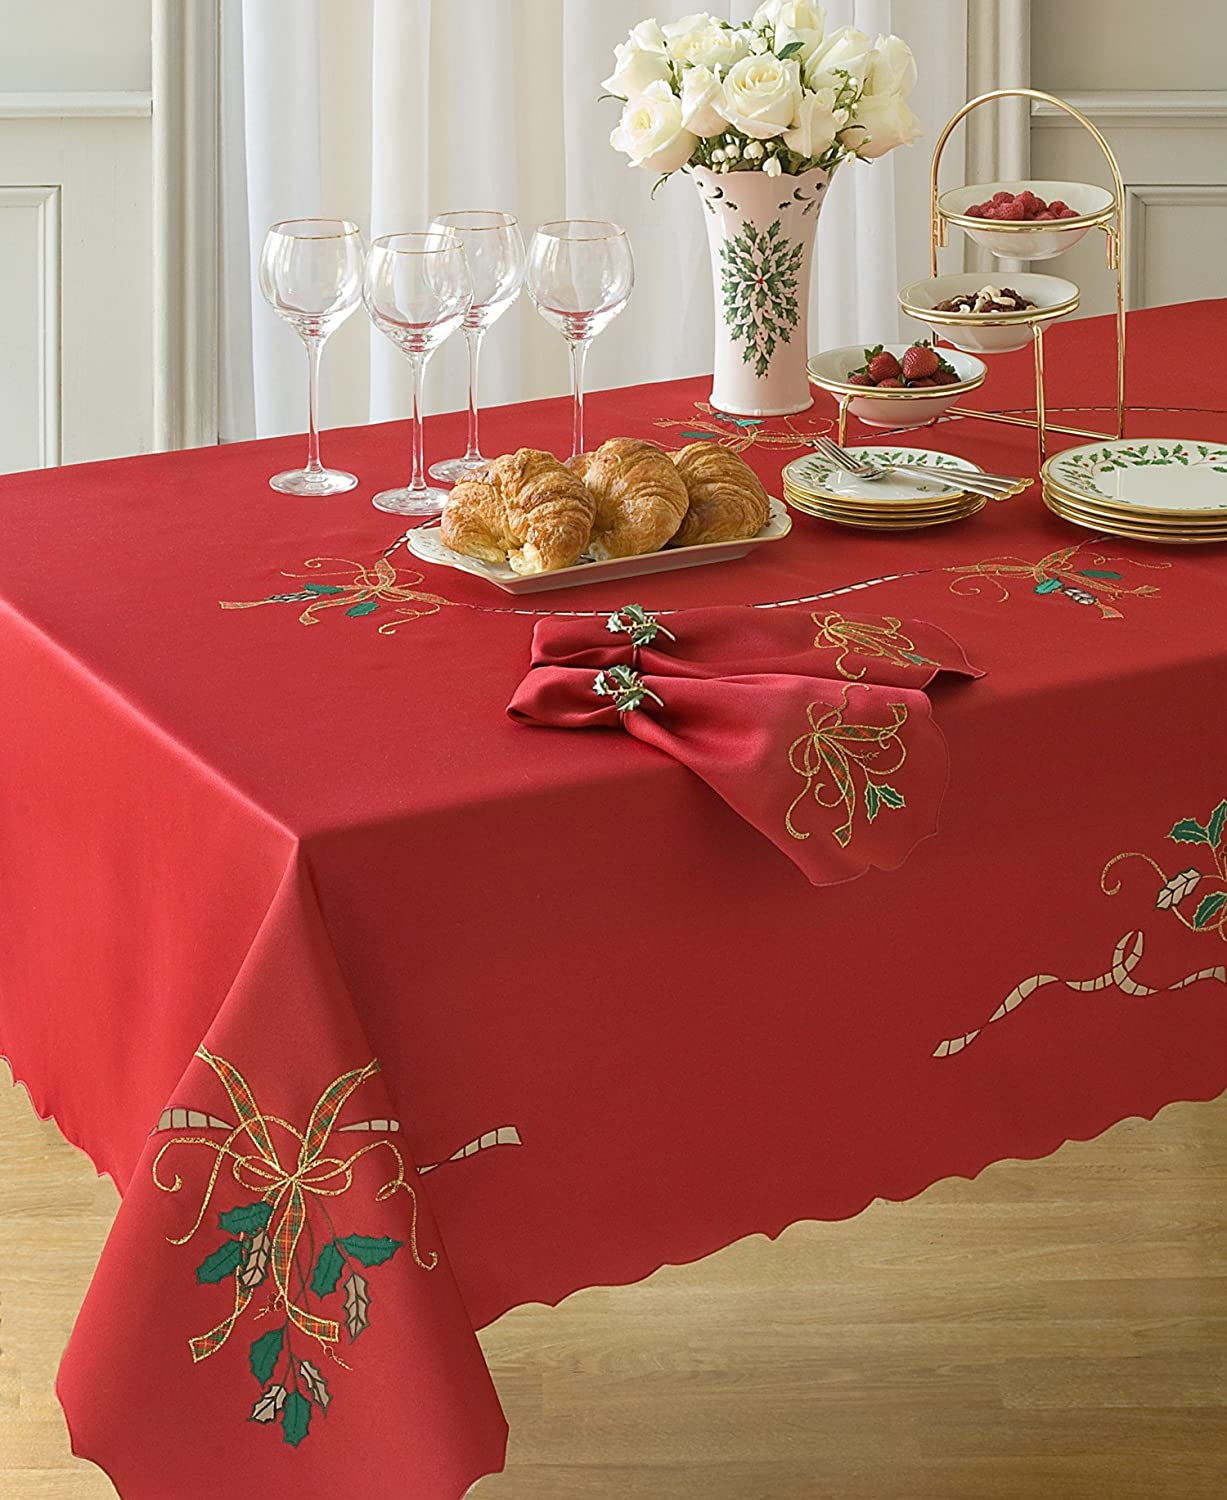 Amazon Lenox Holiday Nouveau Tablecloth 60 By 120 Inch Oblong